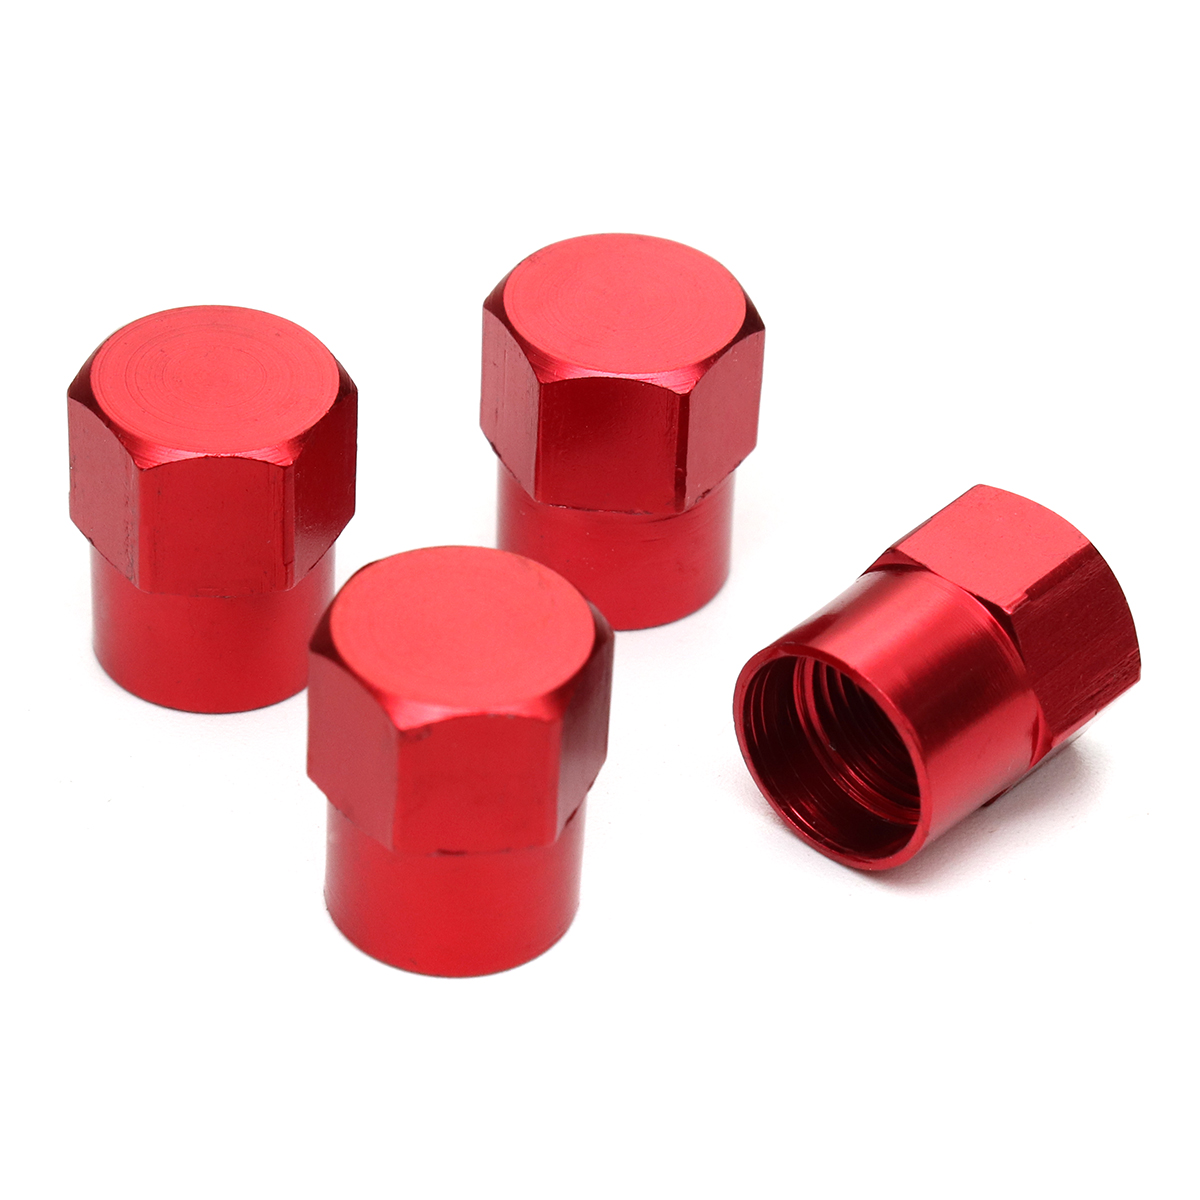 4Pcs TR413 Aluminium Alloy Car Tire Wheel Tyre Valve Stem Hex Caps And Sleeve Cover